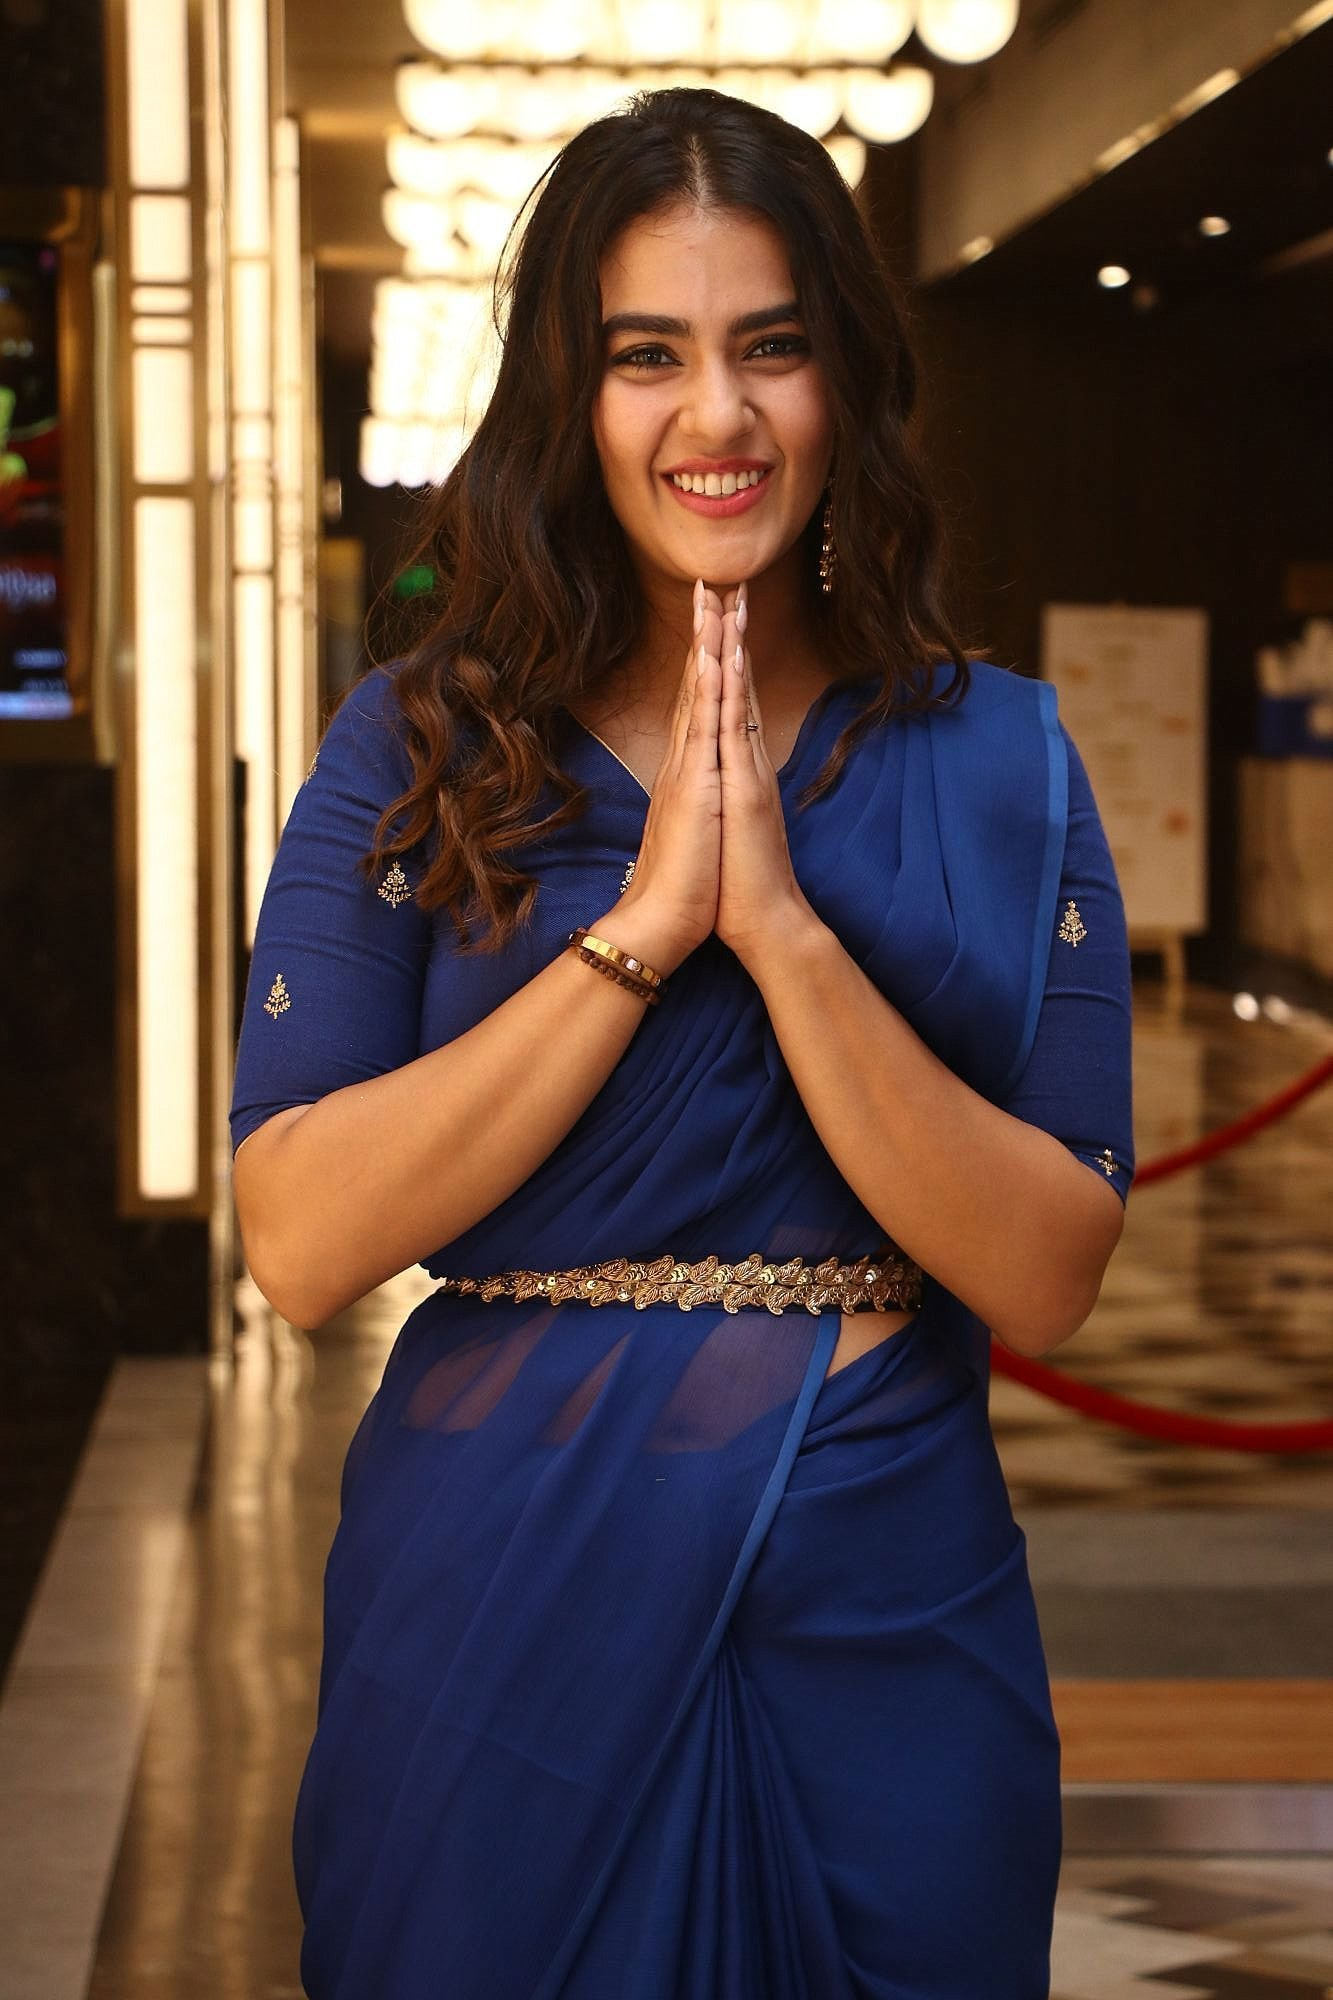 "Kavya Thapar Blue Saree Photos @ Market Raja Audio Launch ""width ="" 1333 ""height ="" 2000 ""srcset ="" https://thenewscrunch.com/wp-content/uploads/2019/09/kavya-thapar-photos-market- raja-audio-launch-9.jpg 1333w, https://thenewscrunch.com/wp-content/uploads/2019/09/kavya-thapar-photos-market-raja-audio-launch-9-200x300.jpg 200w, https://thenewscrunch.com/wp-content/uploads/2019/09/kavya-thapar-photos-market-raja-audio-launch-9-768x1152.jpg 768w, https://thenewscrunch.com/wp-content /uploads/2019/09/kavya-thapar-photos-market-raja-audio-launch-9-682x1024.jpg 682w, https://thenewscrunch.com/wp-content/uploads/2019/09/kavya-thapar- photos-market-raja-audio-launch-9-696x1044.jpg 696w ""size ="" (max width: 1333px) 100vw, 1333px"